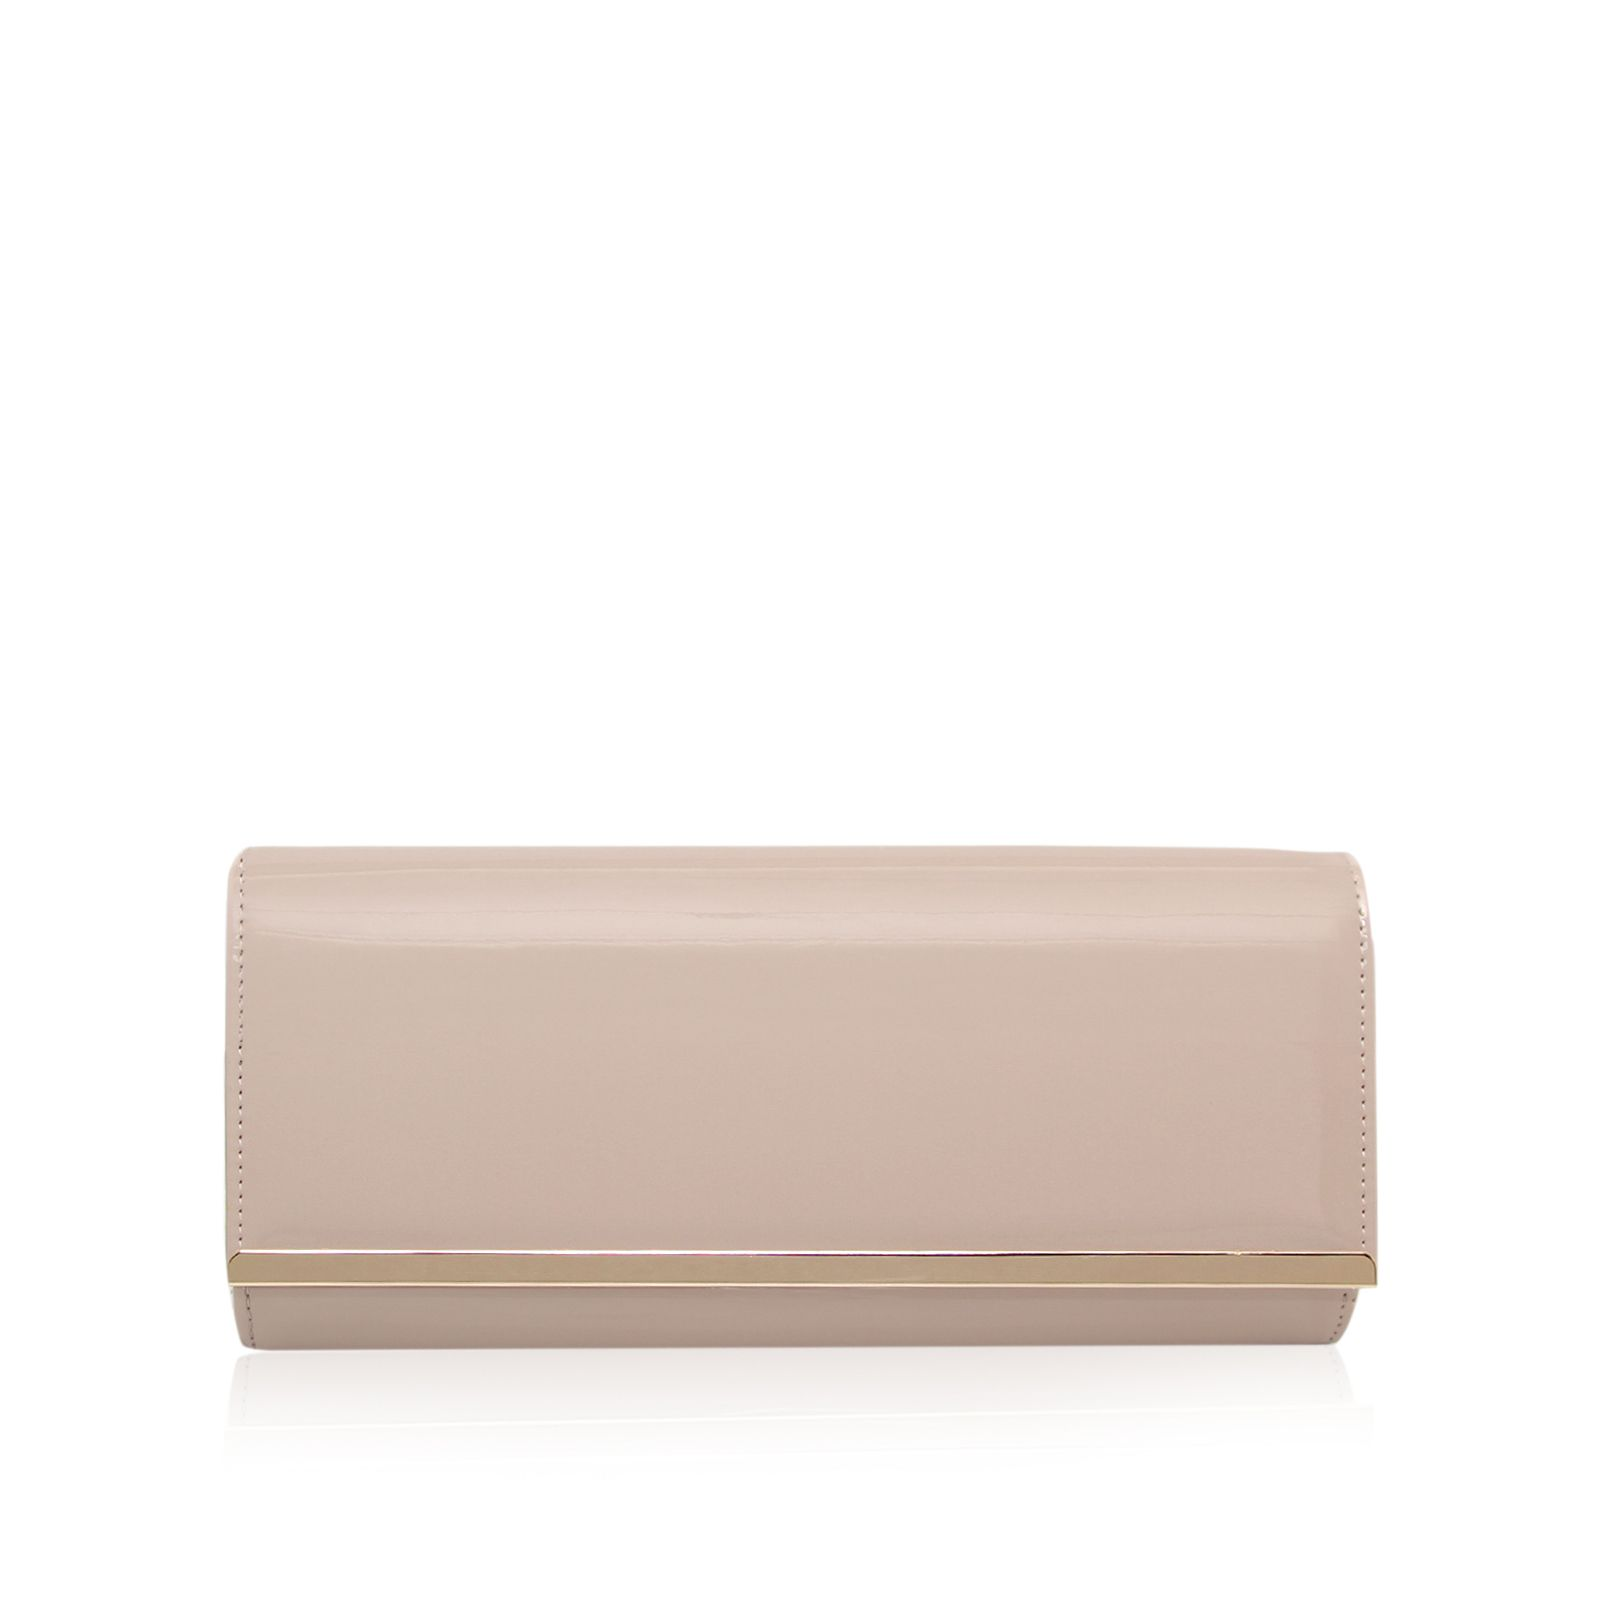 Tamera clutch bag